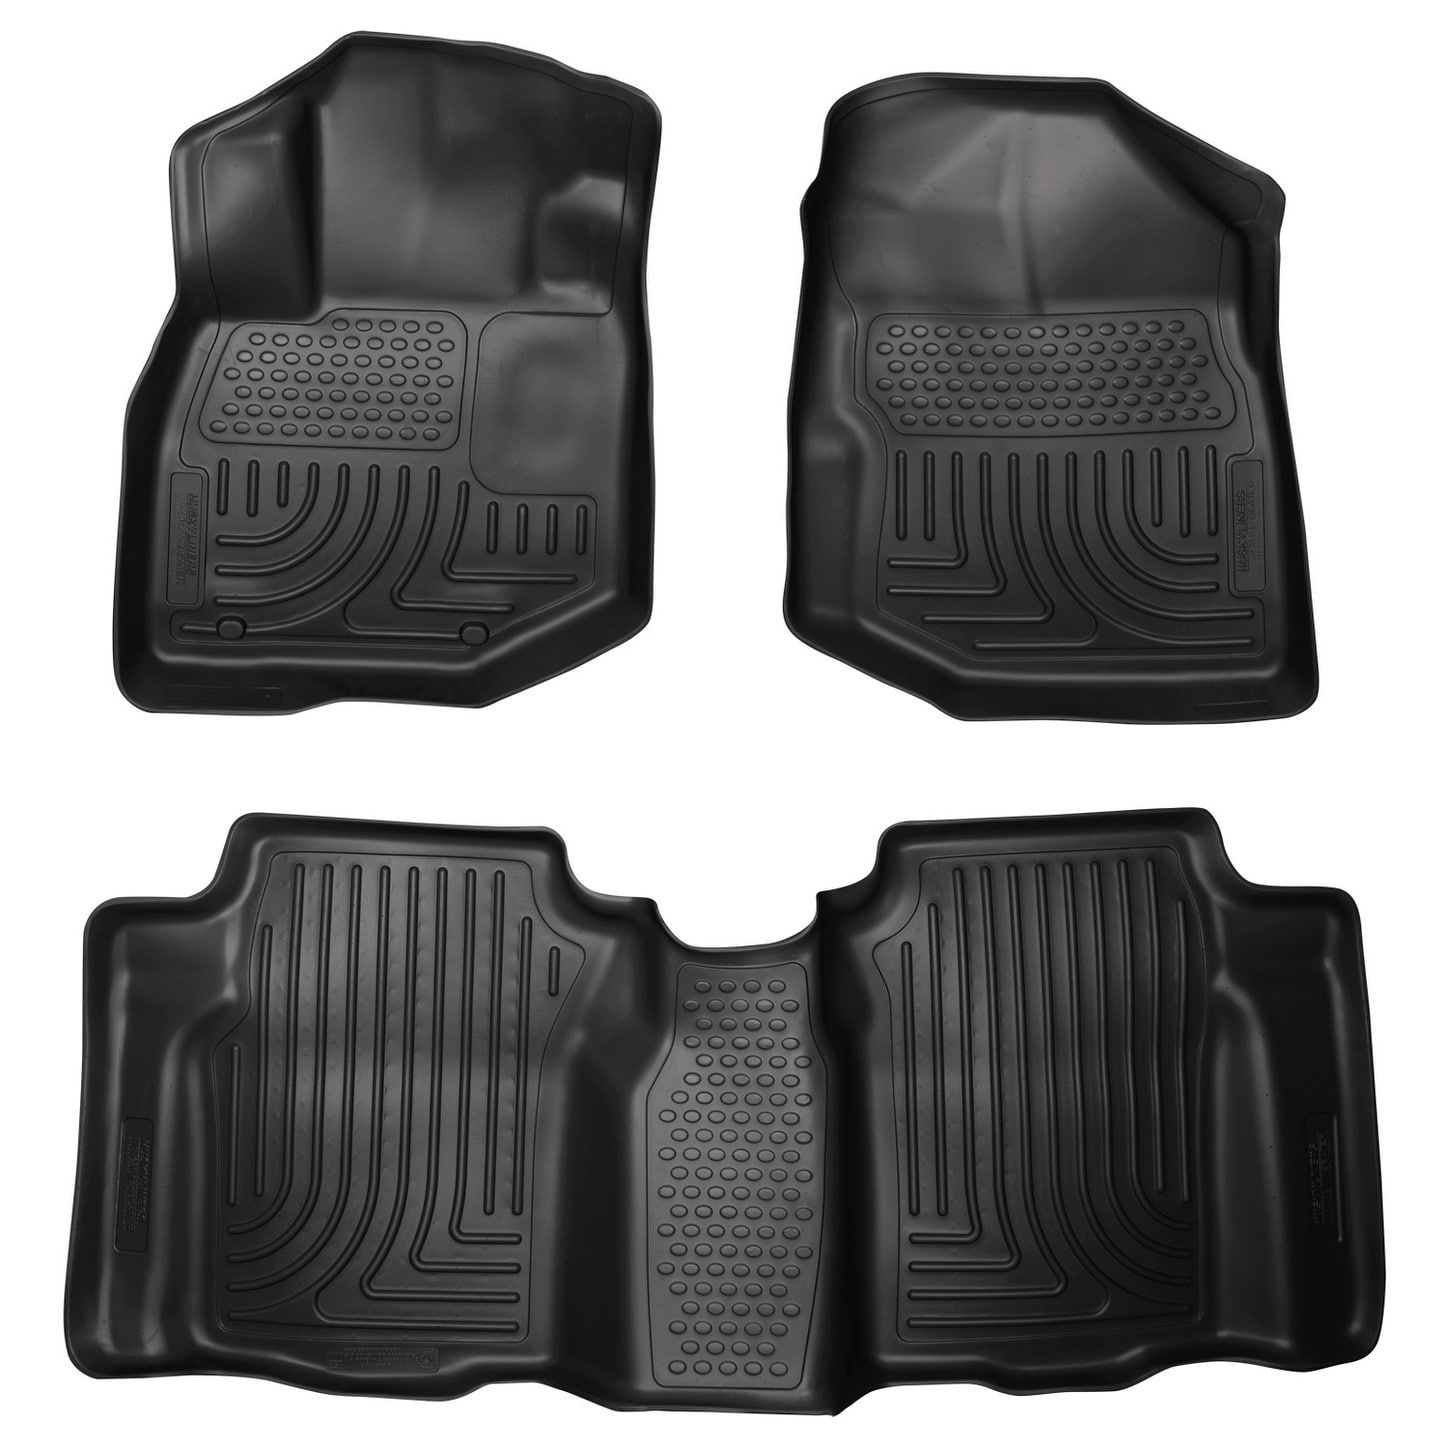 Husky Weatherbeater 2009 2013 Honda Fit Black Front U0026 Rear Floor Mats/Liners